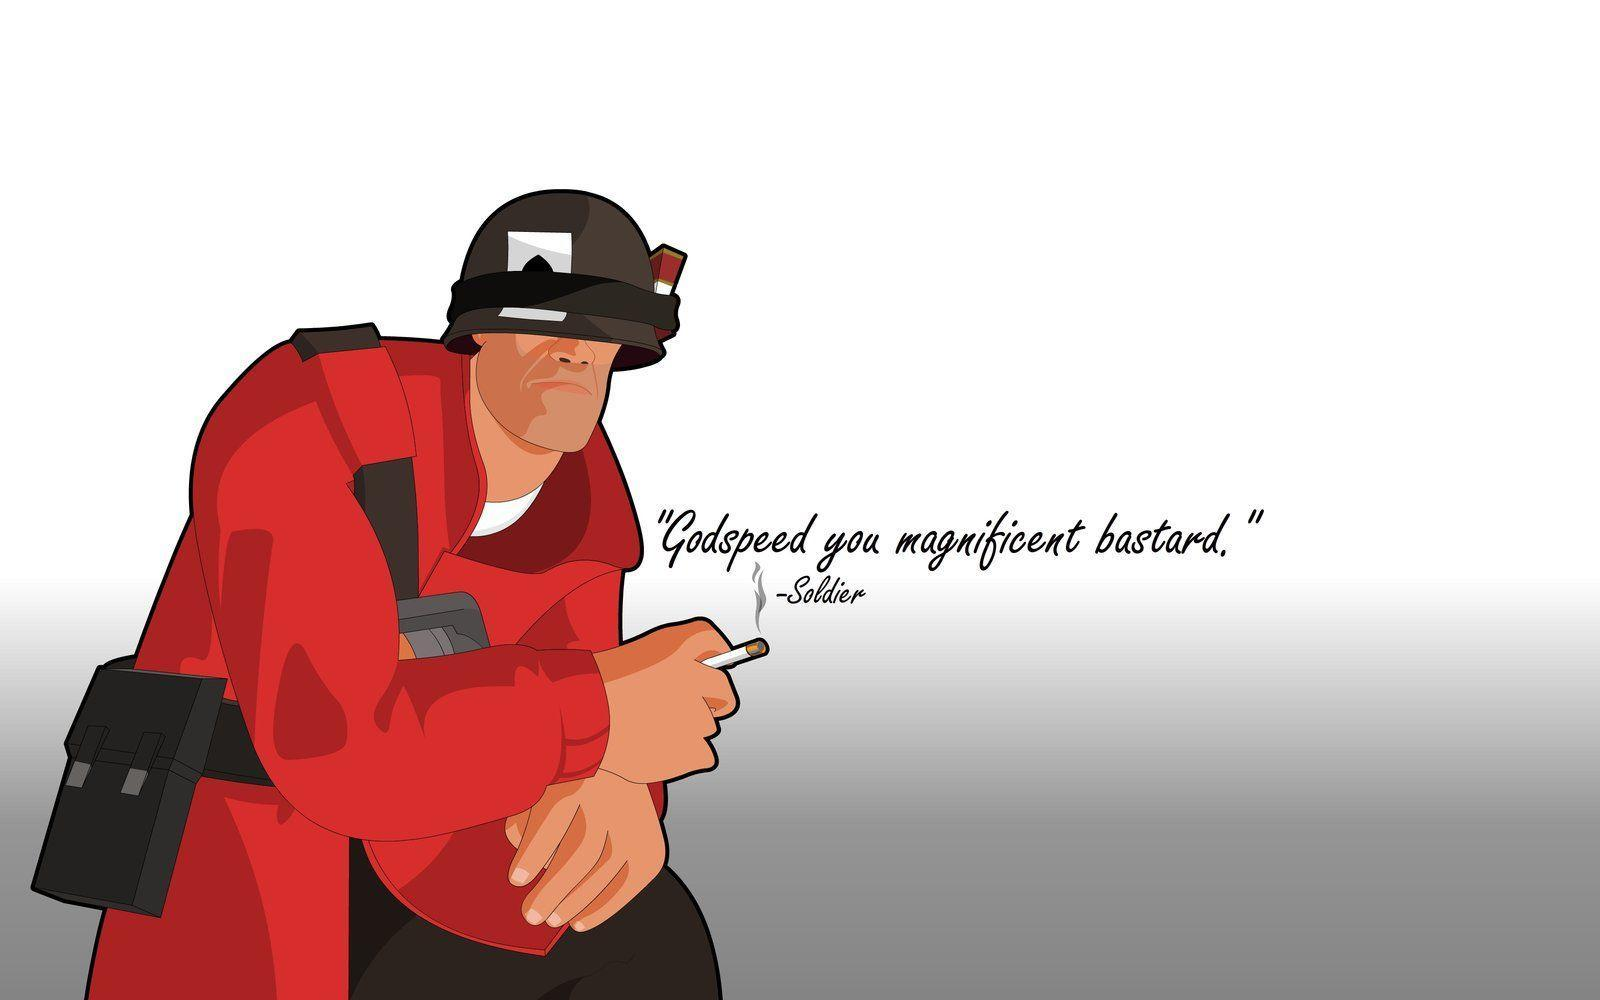 Team Fortress 2 Soldier Wallpapers - Wallpaper Cave  Team Fortress 2...